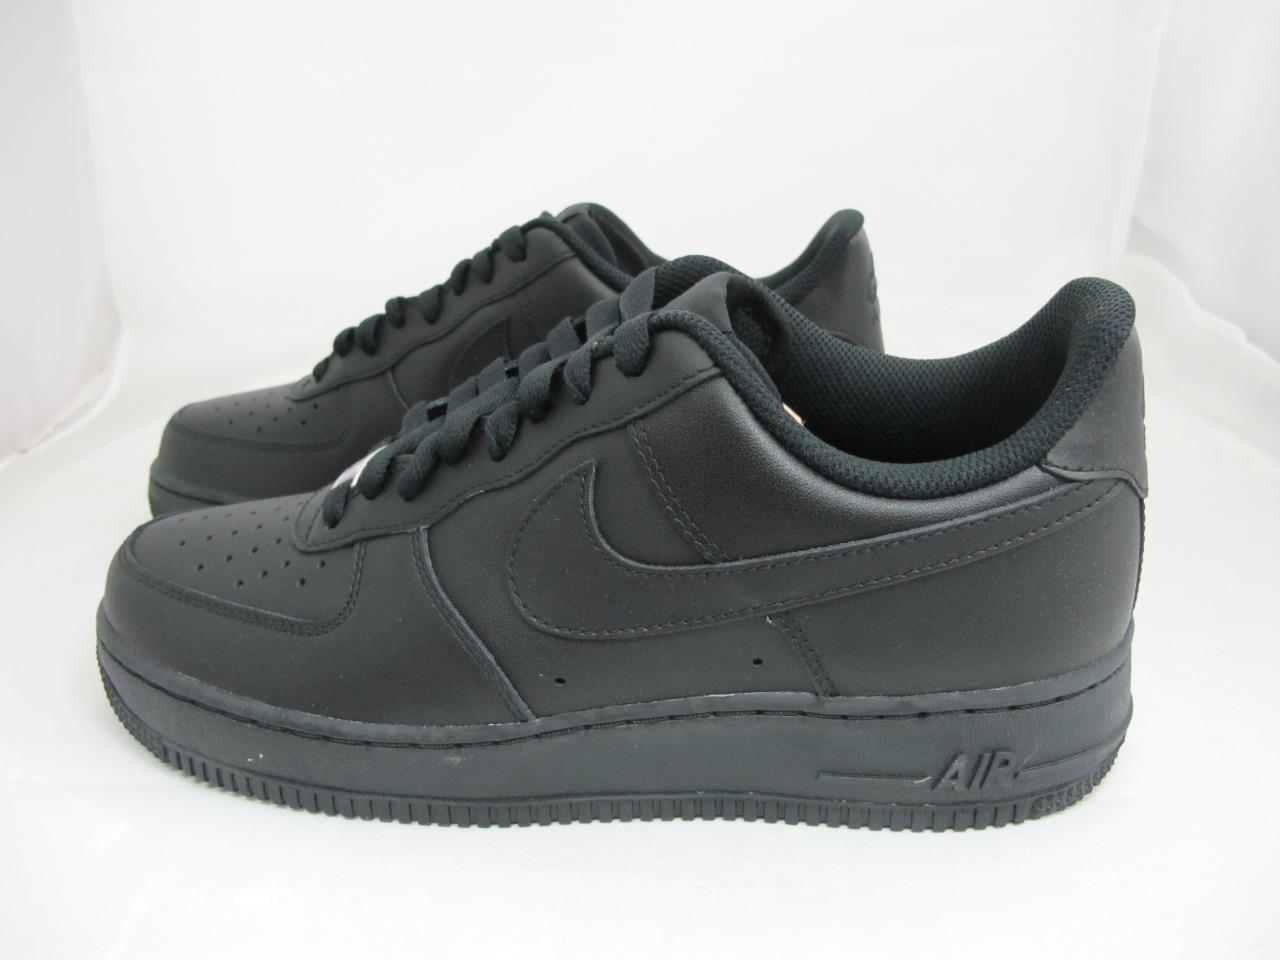 NEW homme NIKE AIR Obliger 1 'O7 315122-001